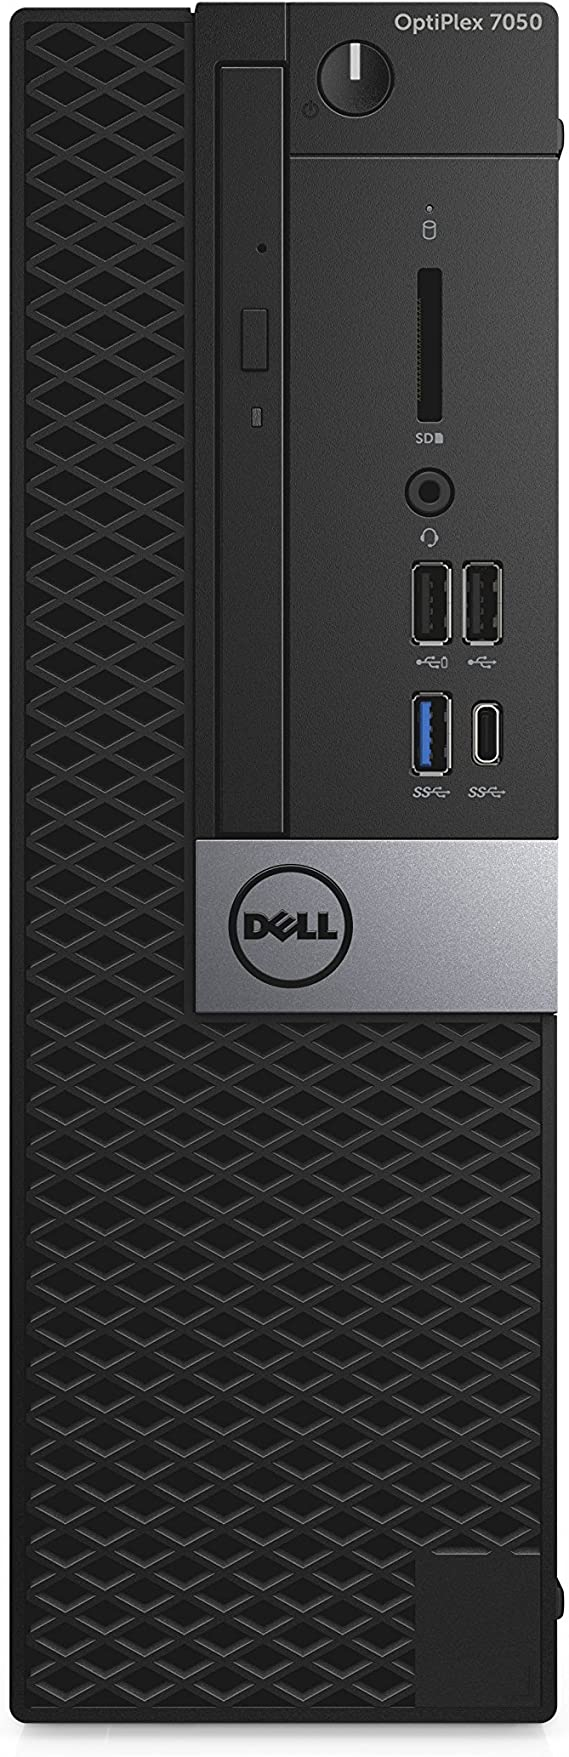 DELL, OptiPlex 7050 3.6 GHz i7 - 7700 SFF - PC negro